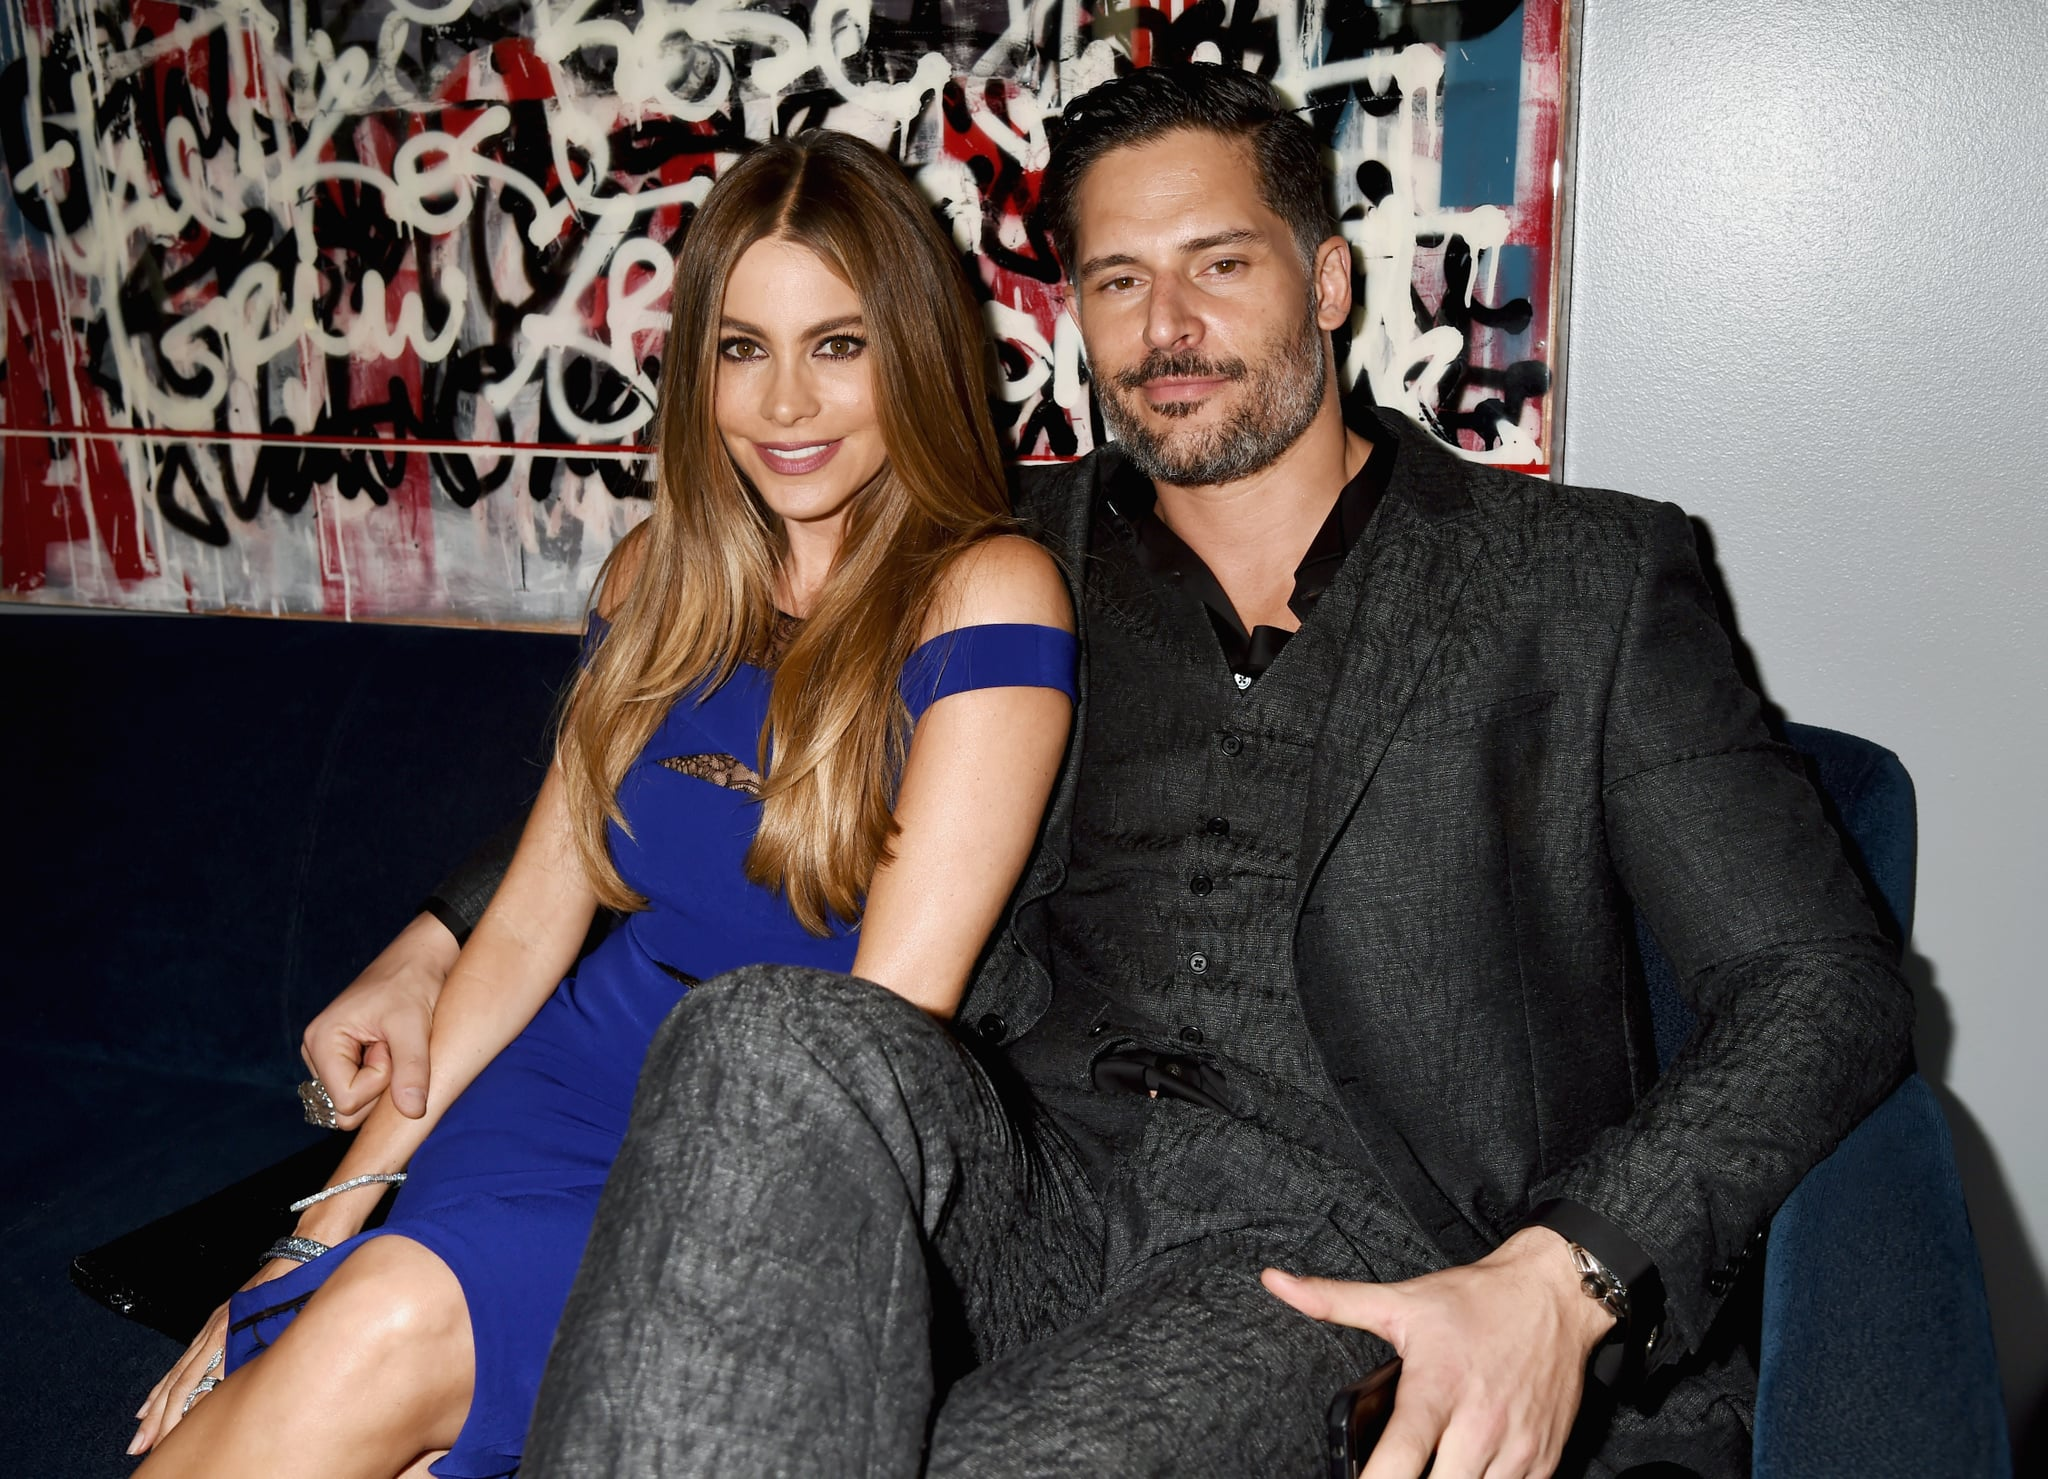 LOS ANGELES, CA - APRIL 12:  Actors Sofia Vergara (L) and Joe Manganiello attend The 2015 MTV Movie Awards at Nokia Theatre L.A. Live on April 12, 2015 in Los Angeles, California.  (Photo by Jeff Kravitz/MTV1415/FilmMagic)